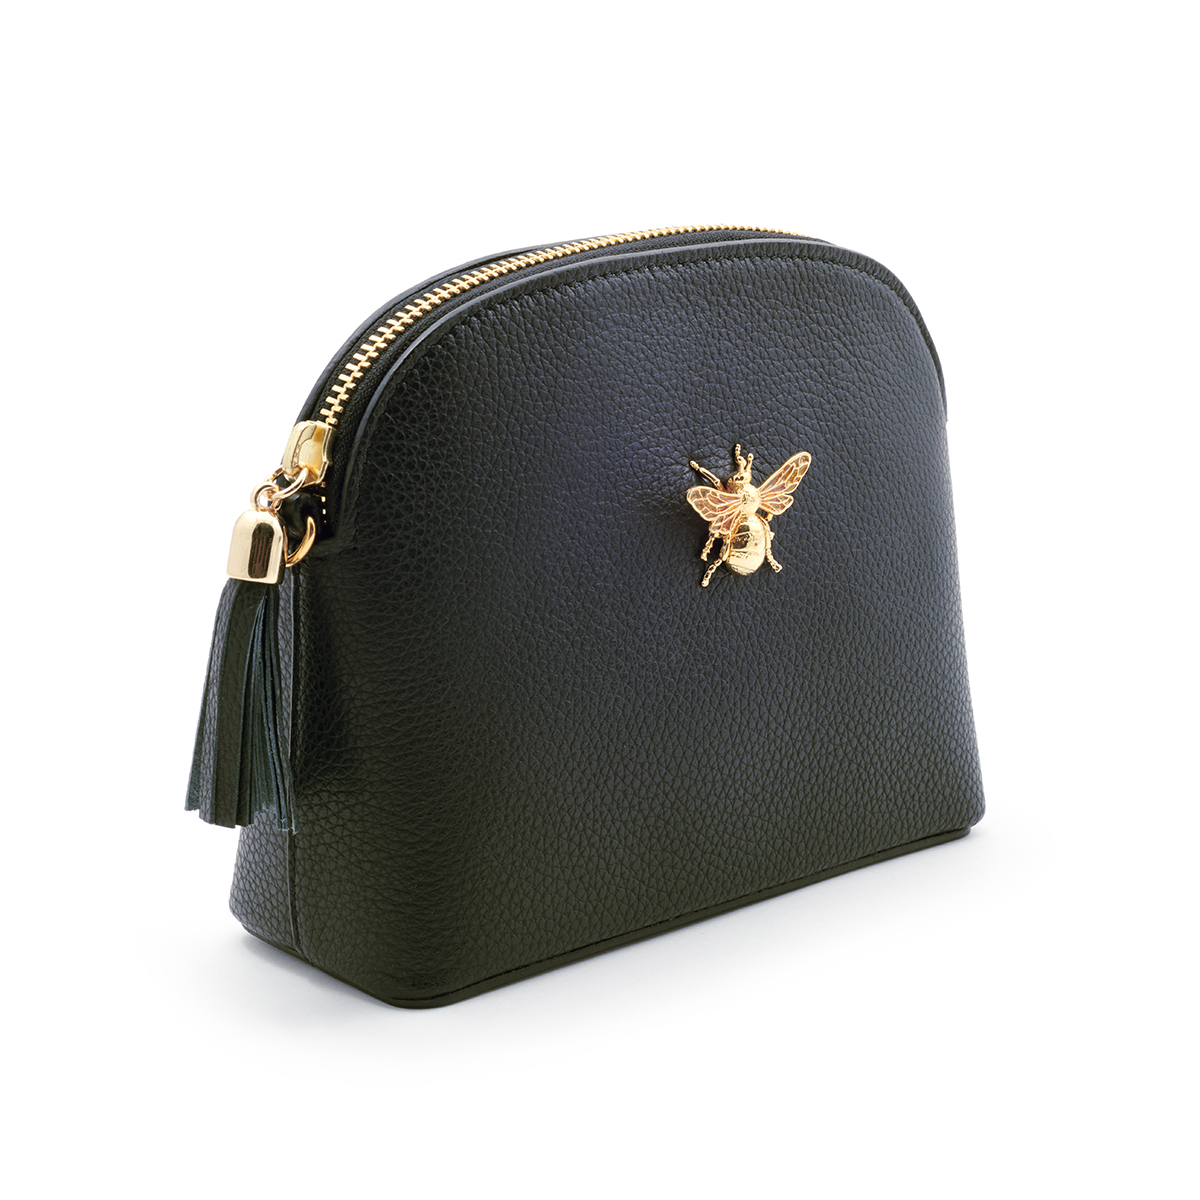 Queen Bee Leather Handbag - Black